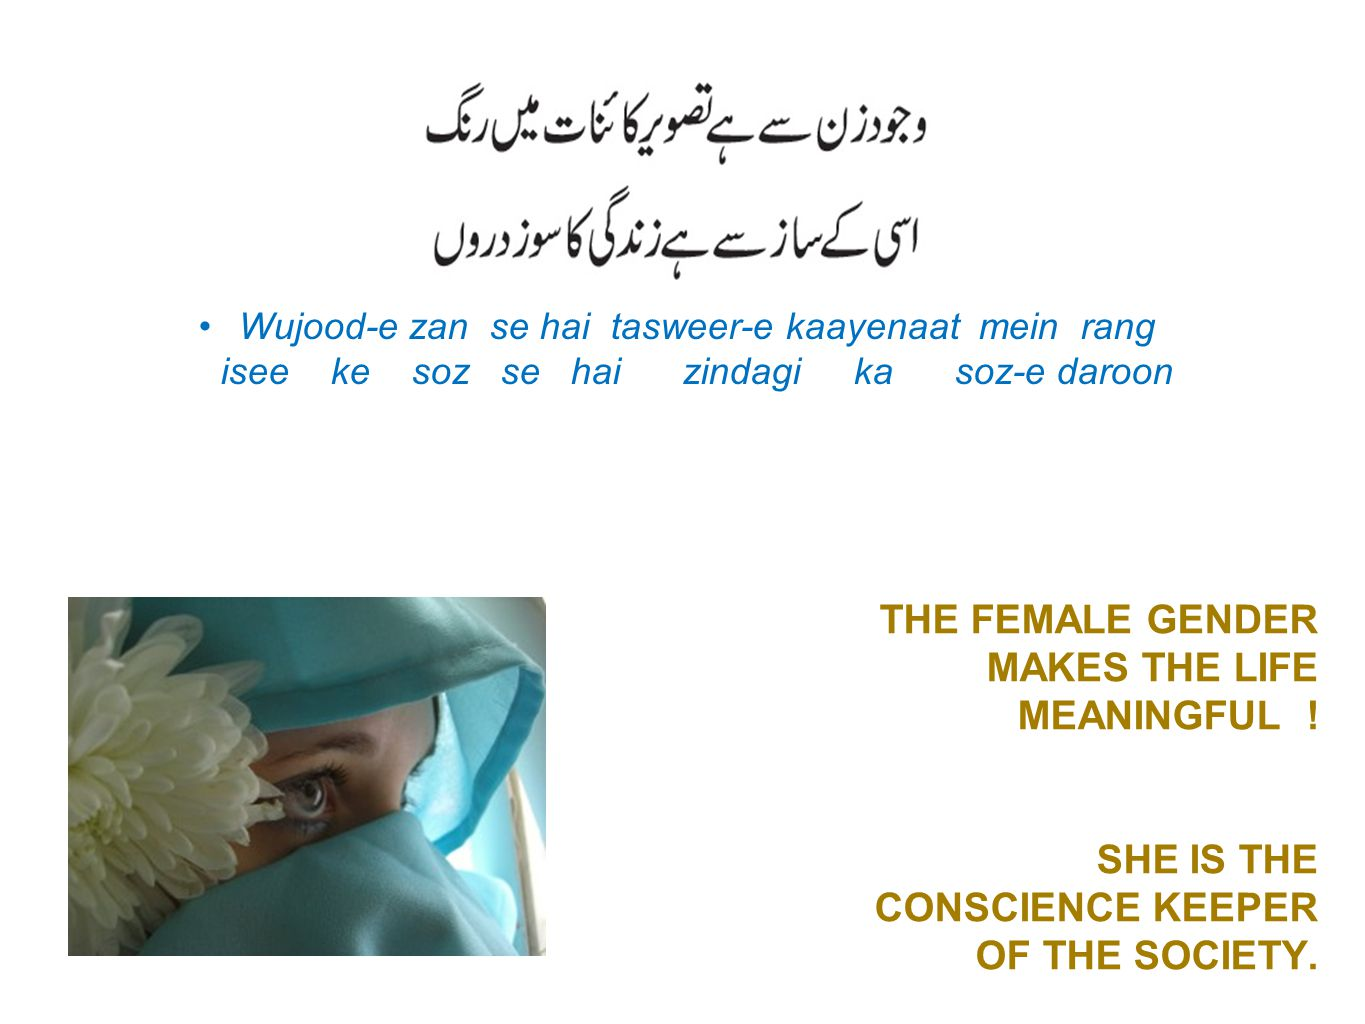 THE FEMALE GENDER MAKES THE LIFE MEANINGFUL ! SHE IS THE CONSCIENCE KEEPER OF THE SOCIETY. Wujood-e zan se hai tasweer-e kaayenaat mein rang isee ke s